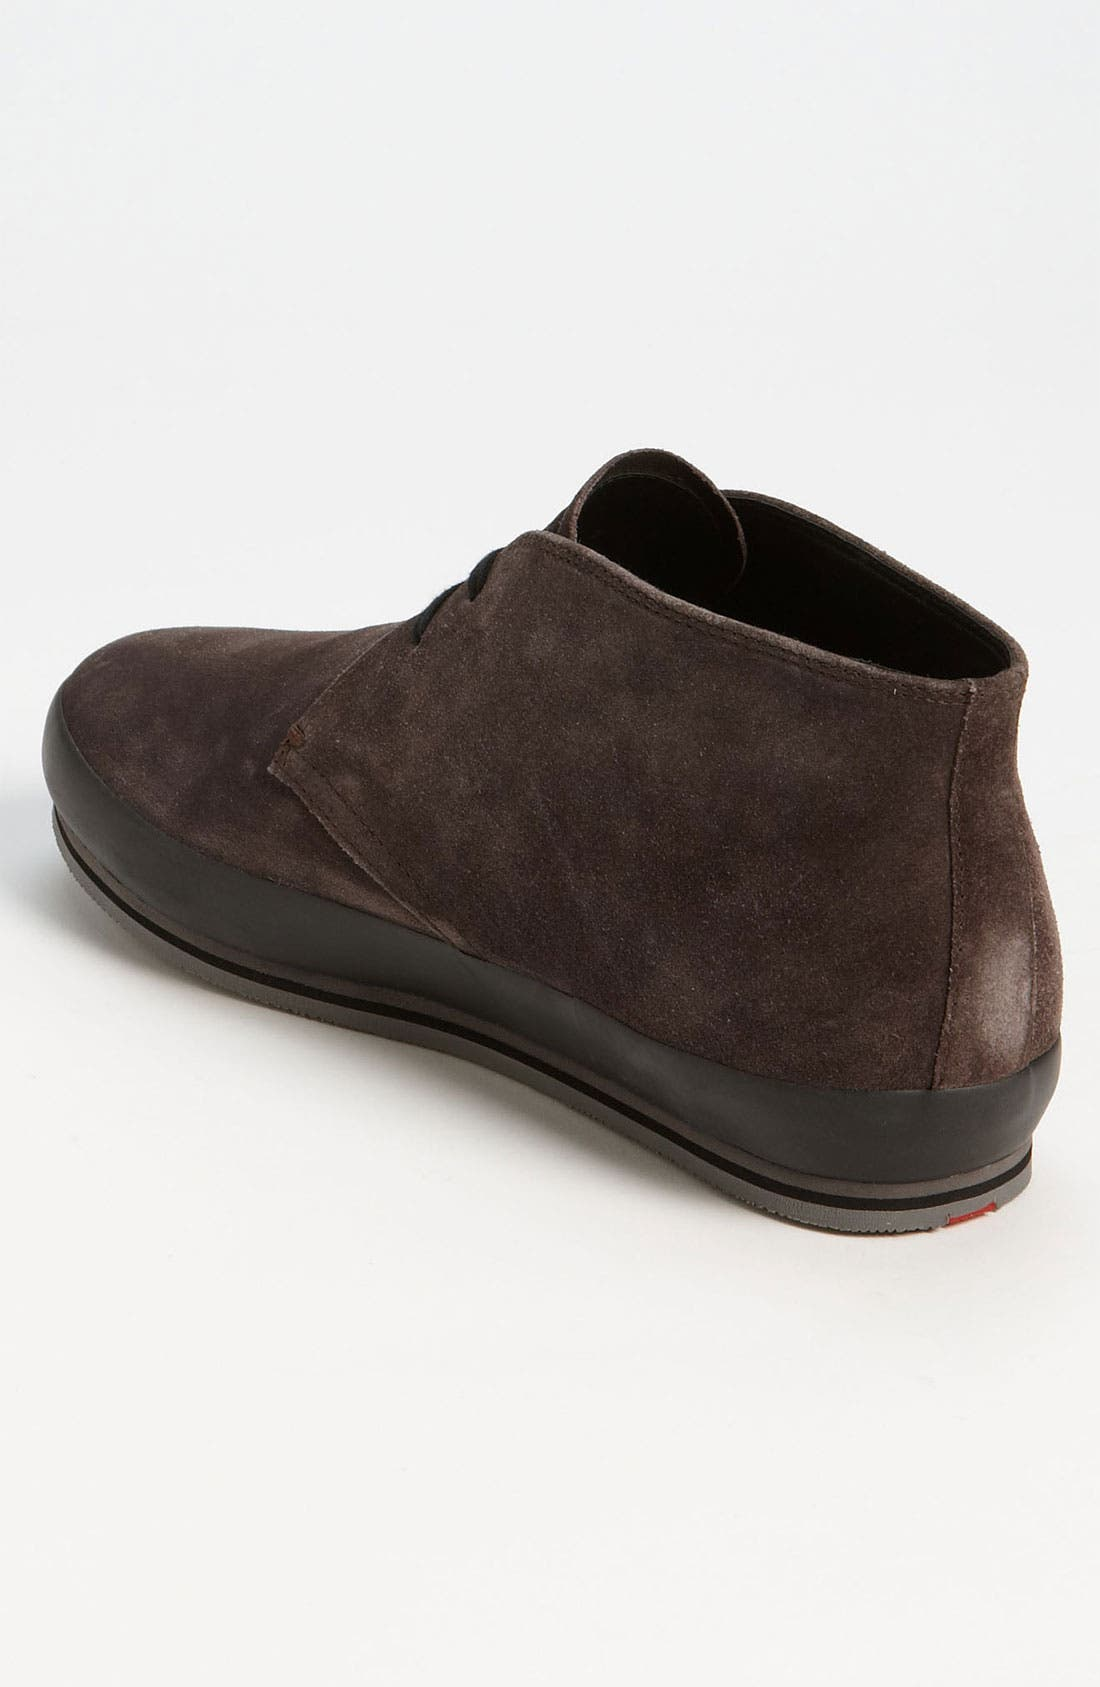 Suede Chukka Boot,                             Alternate thumbnail 3, color,                             060